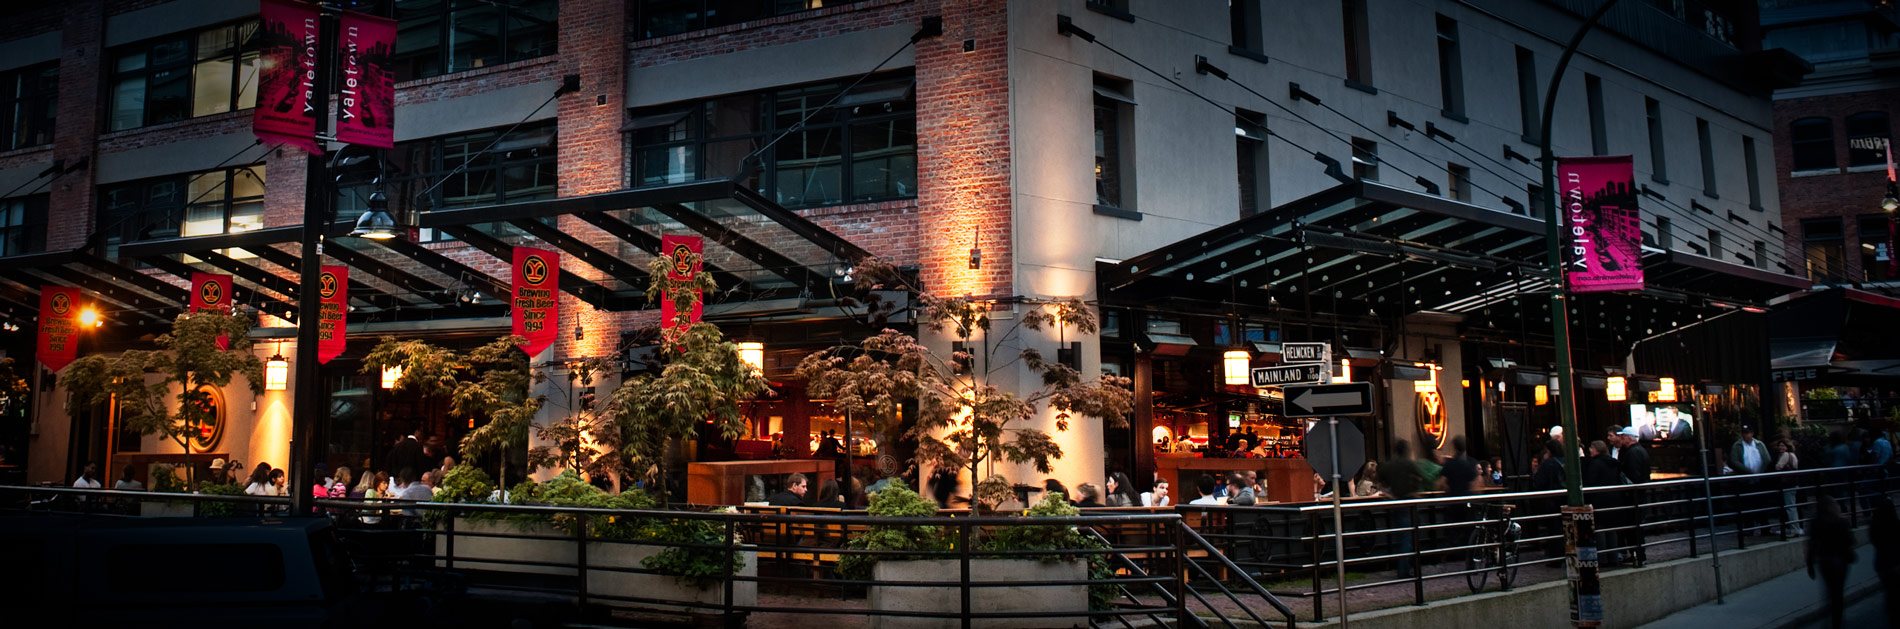 Yaletown Vancouver Brewery Restaurants